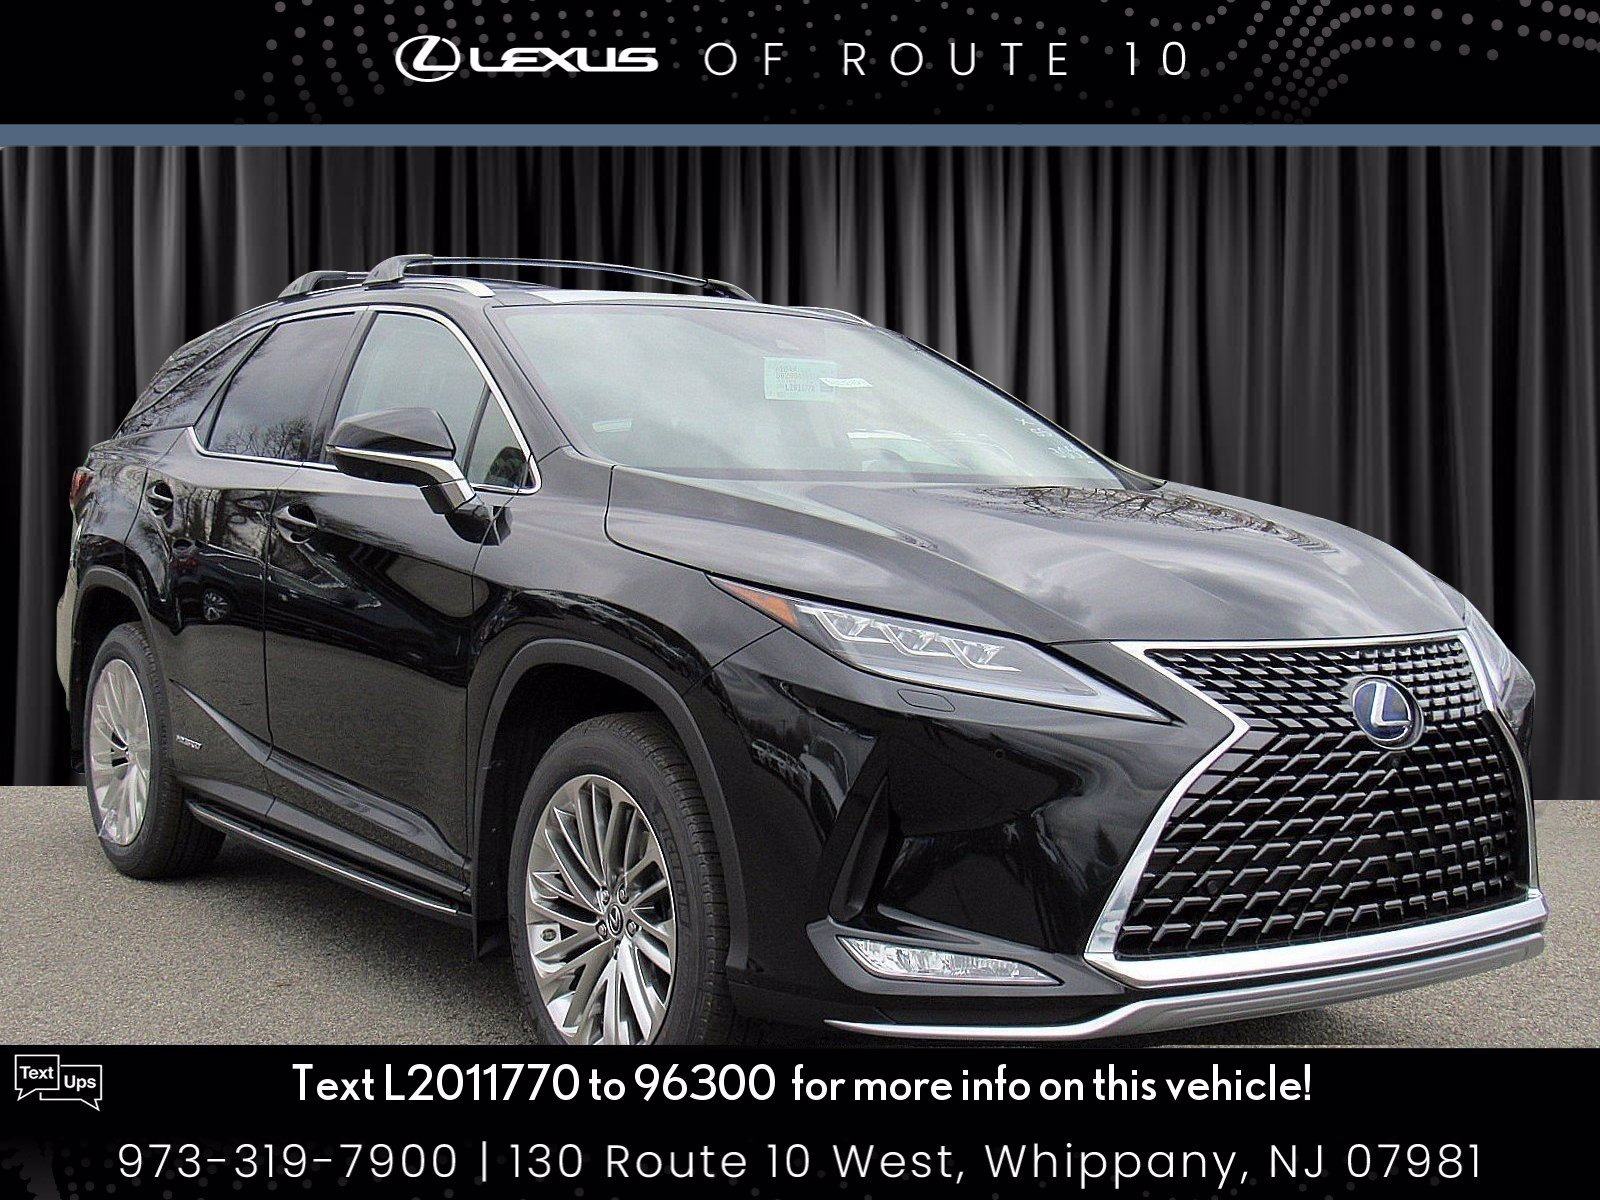 New 2020 Lexus RX 450hL RX 450hL Luxury